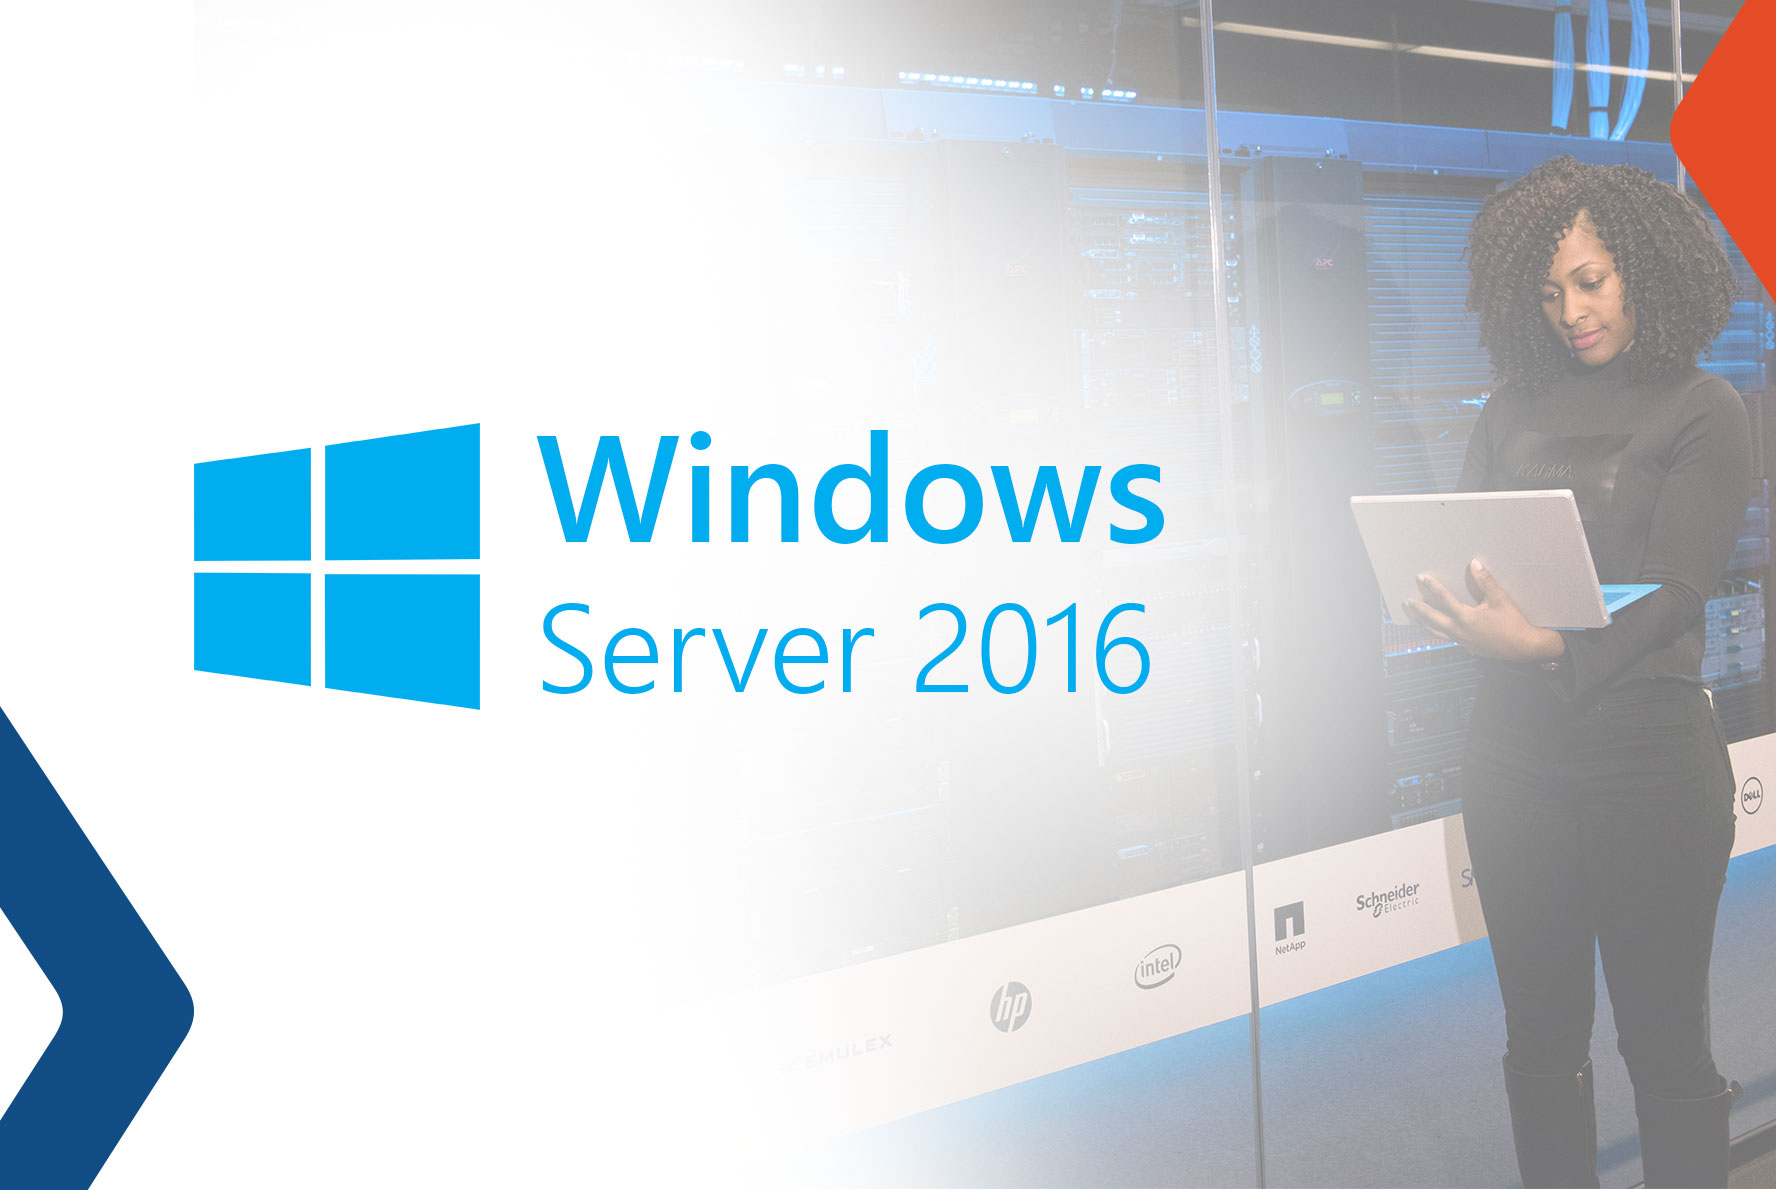 Windows Server Bootcamp